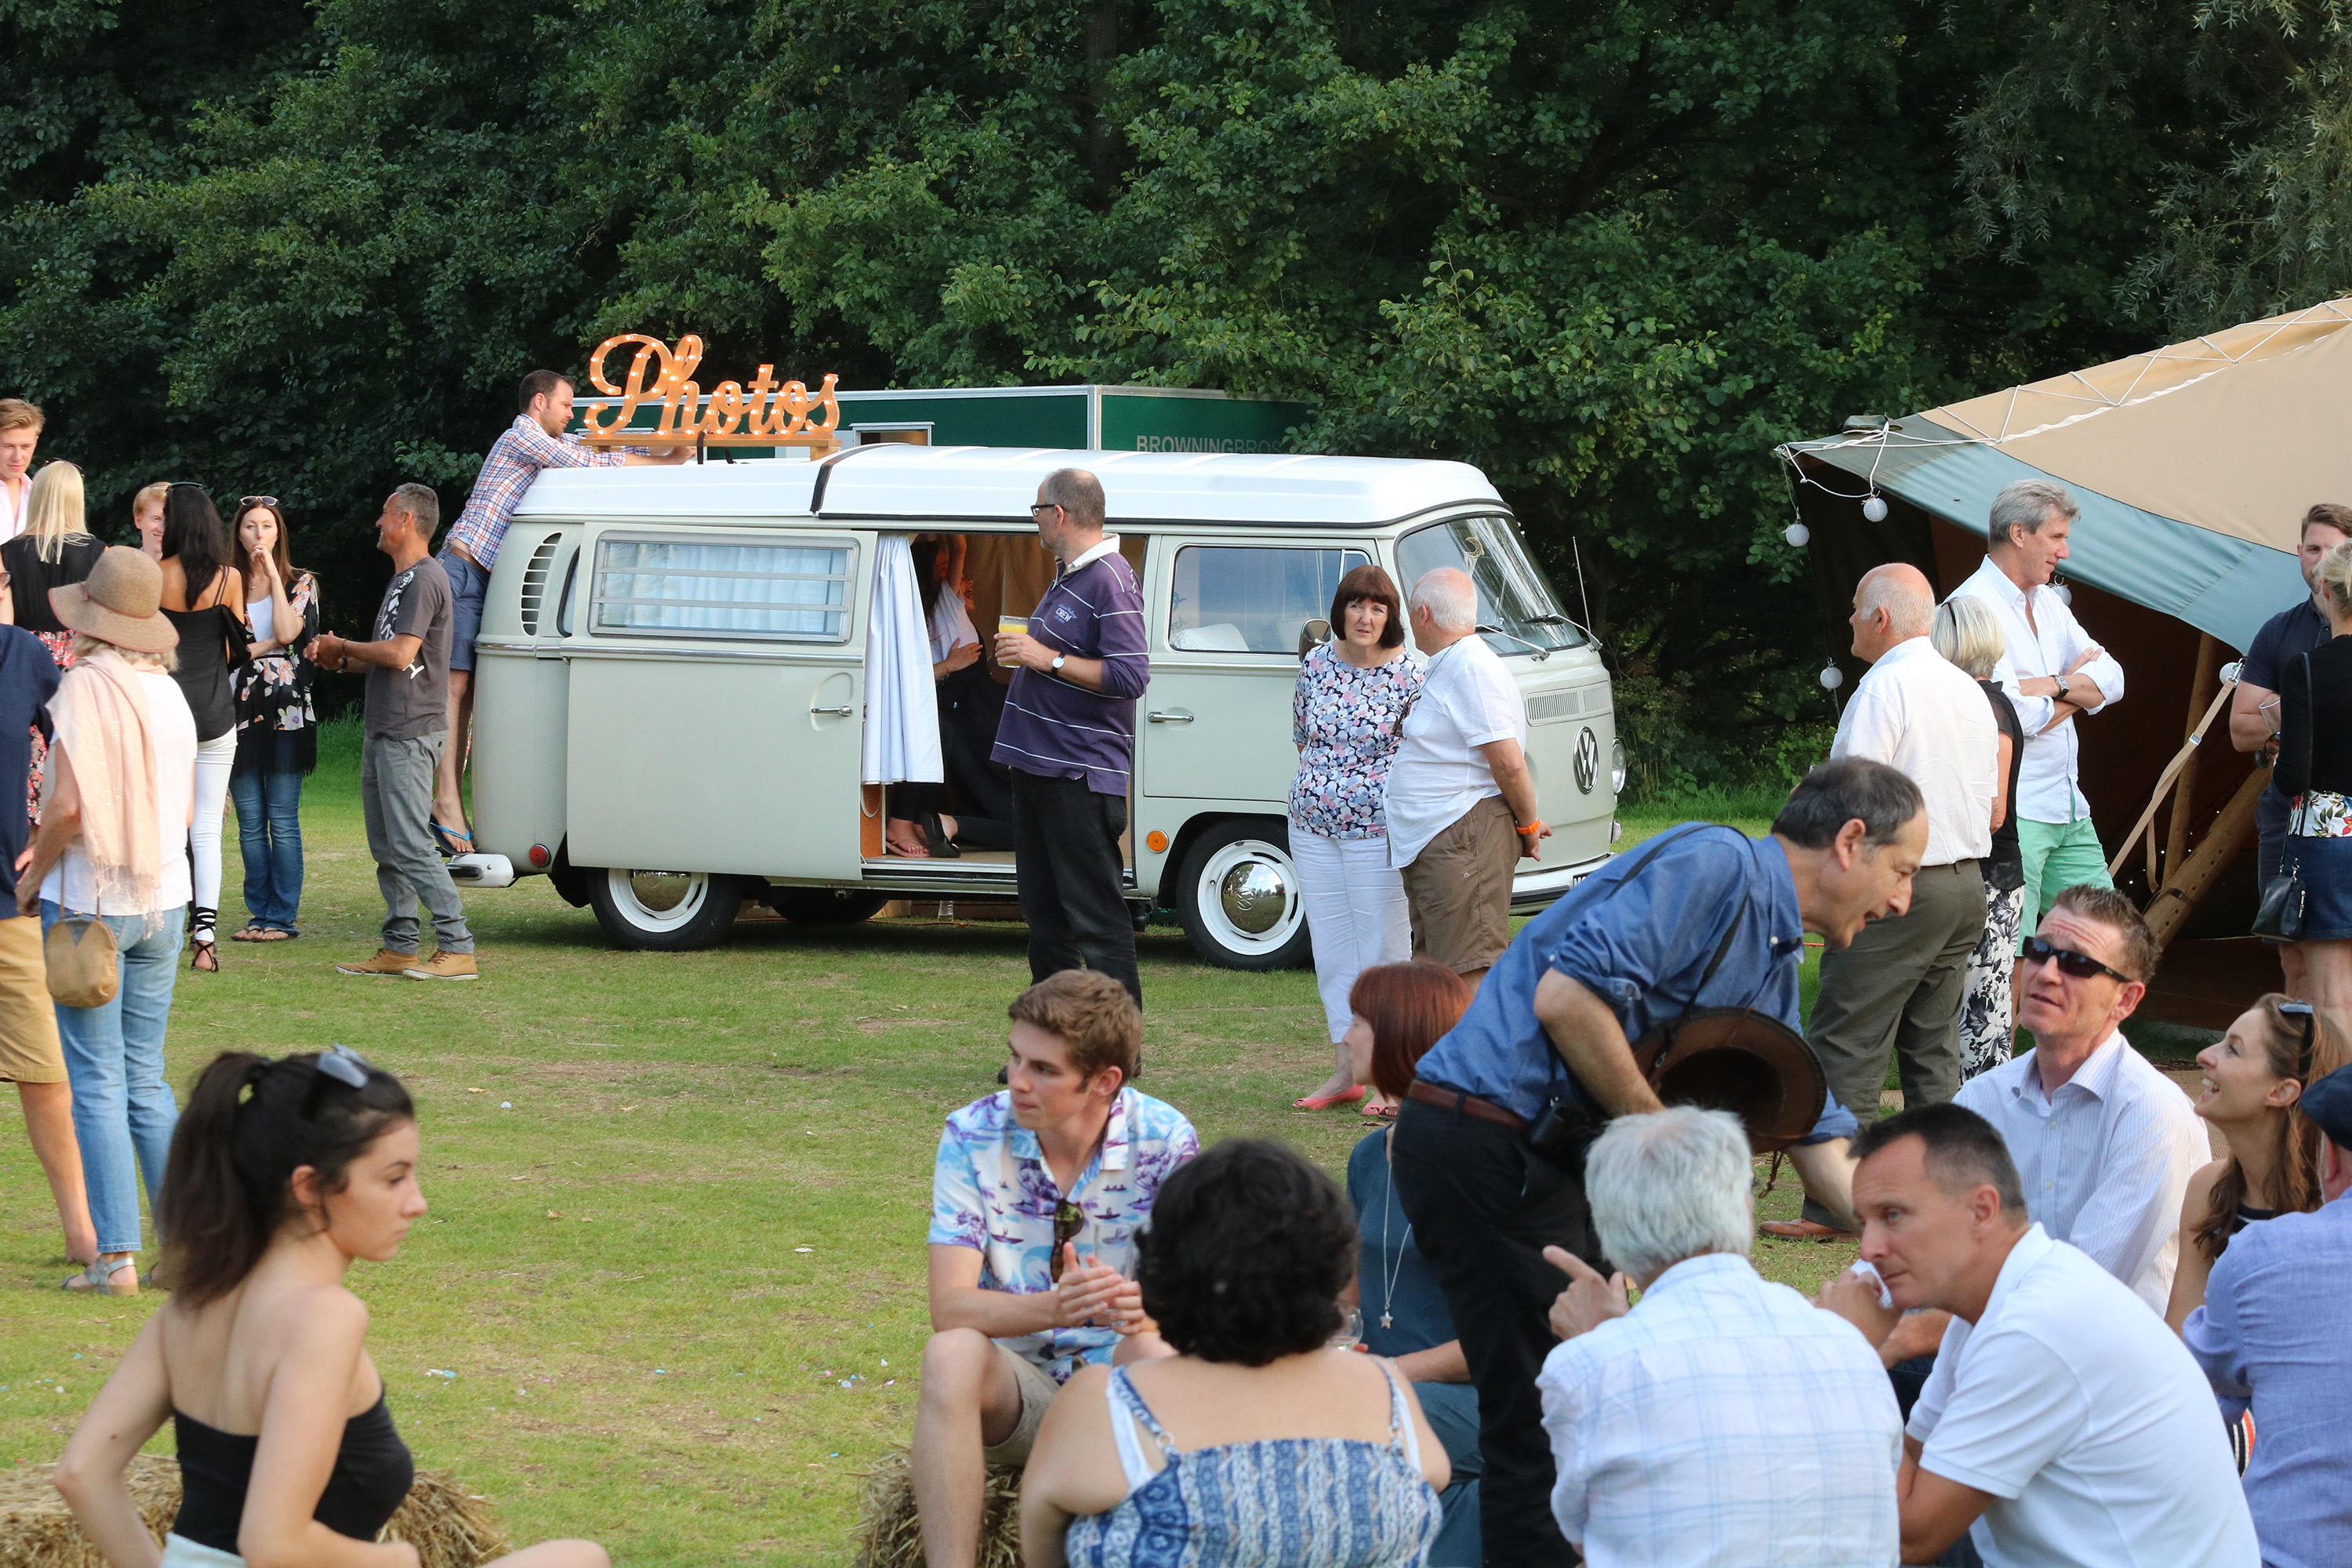 Mansfield Monk 25th anniversary celebrations - outdoor agthering of people by VW camper van photo booth